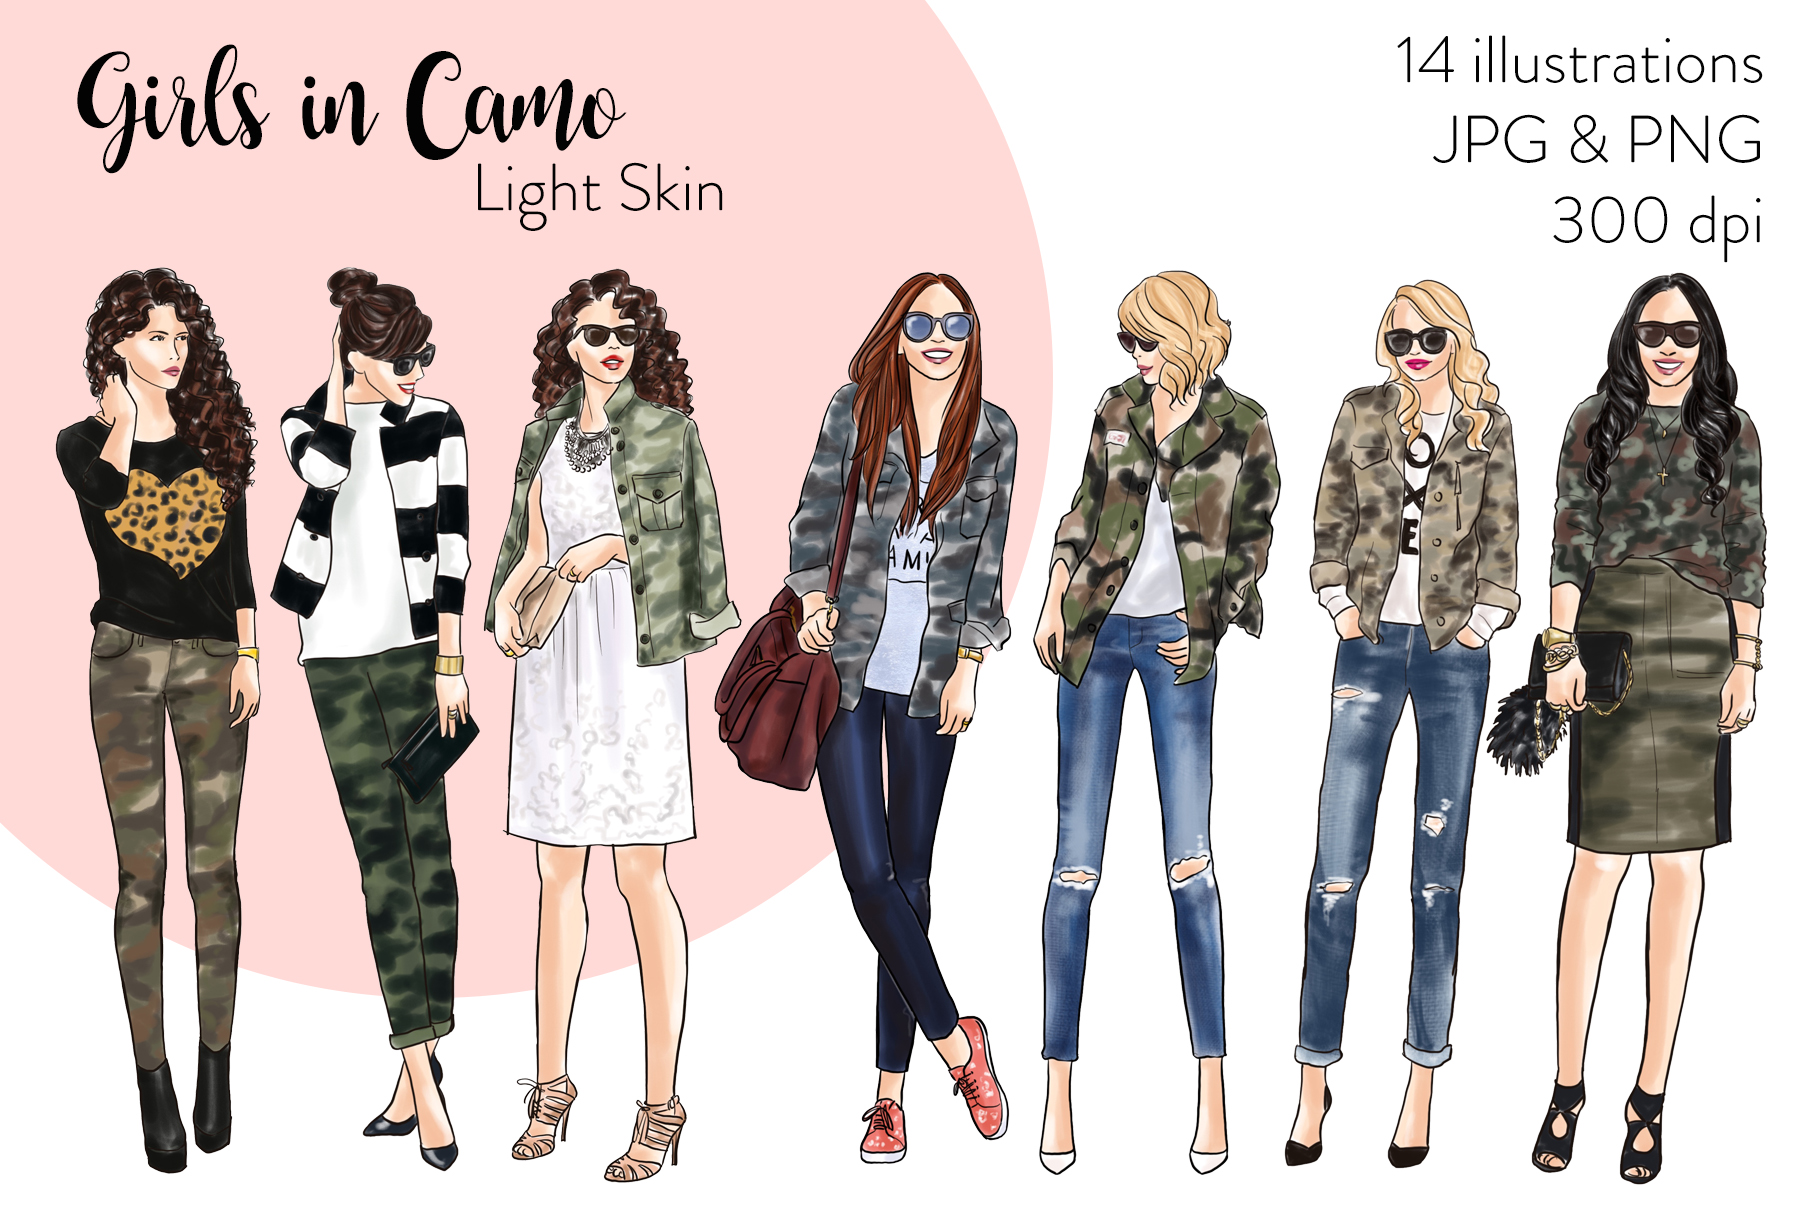 Fashion illustration clipart - Girls in Camo - Light Skin example image 1